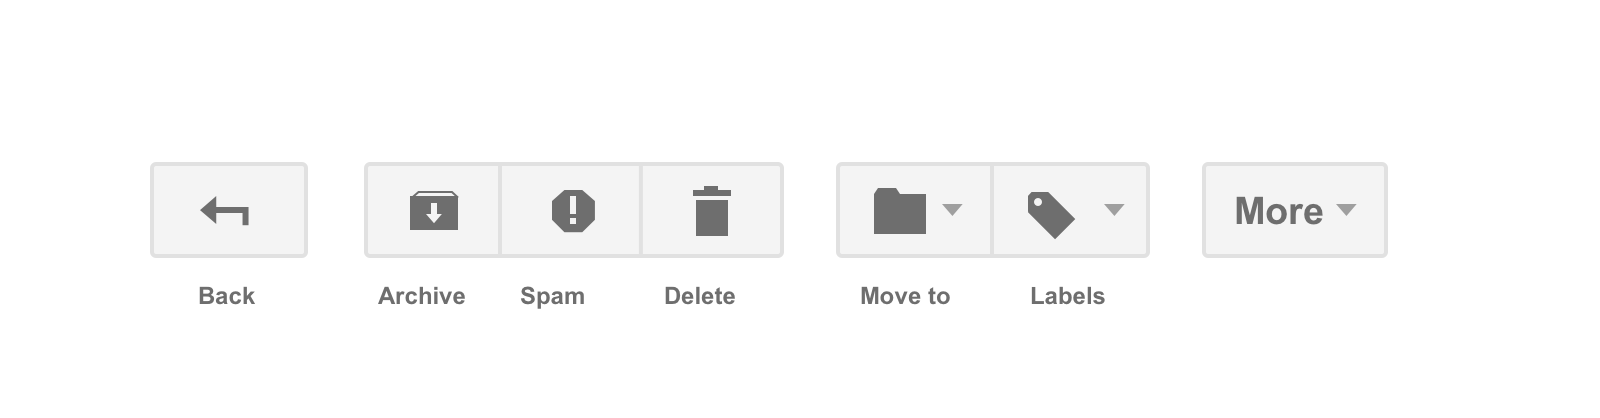 gmail-icon-with-labels